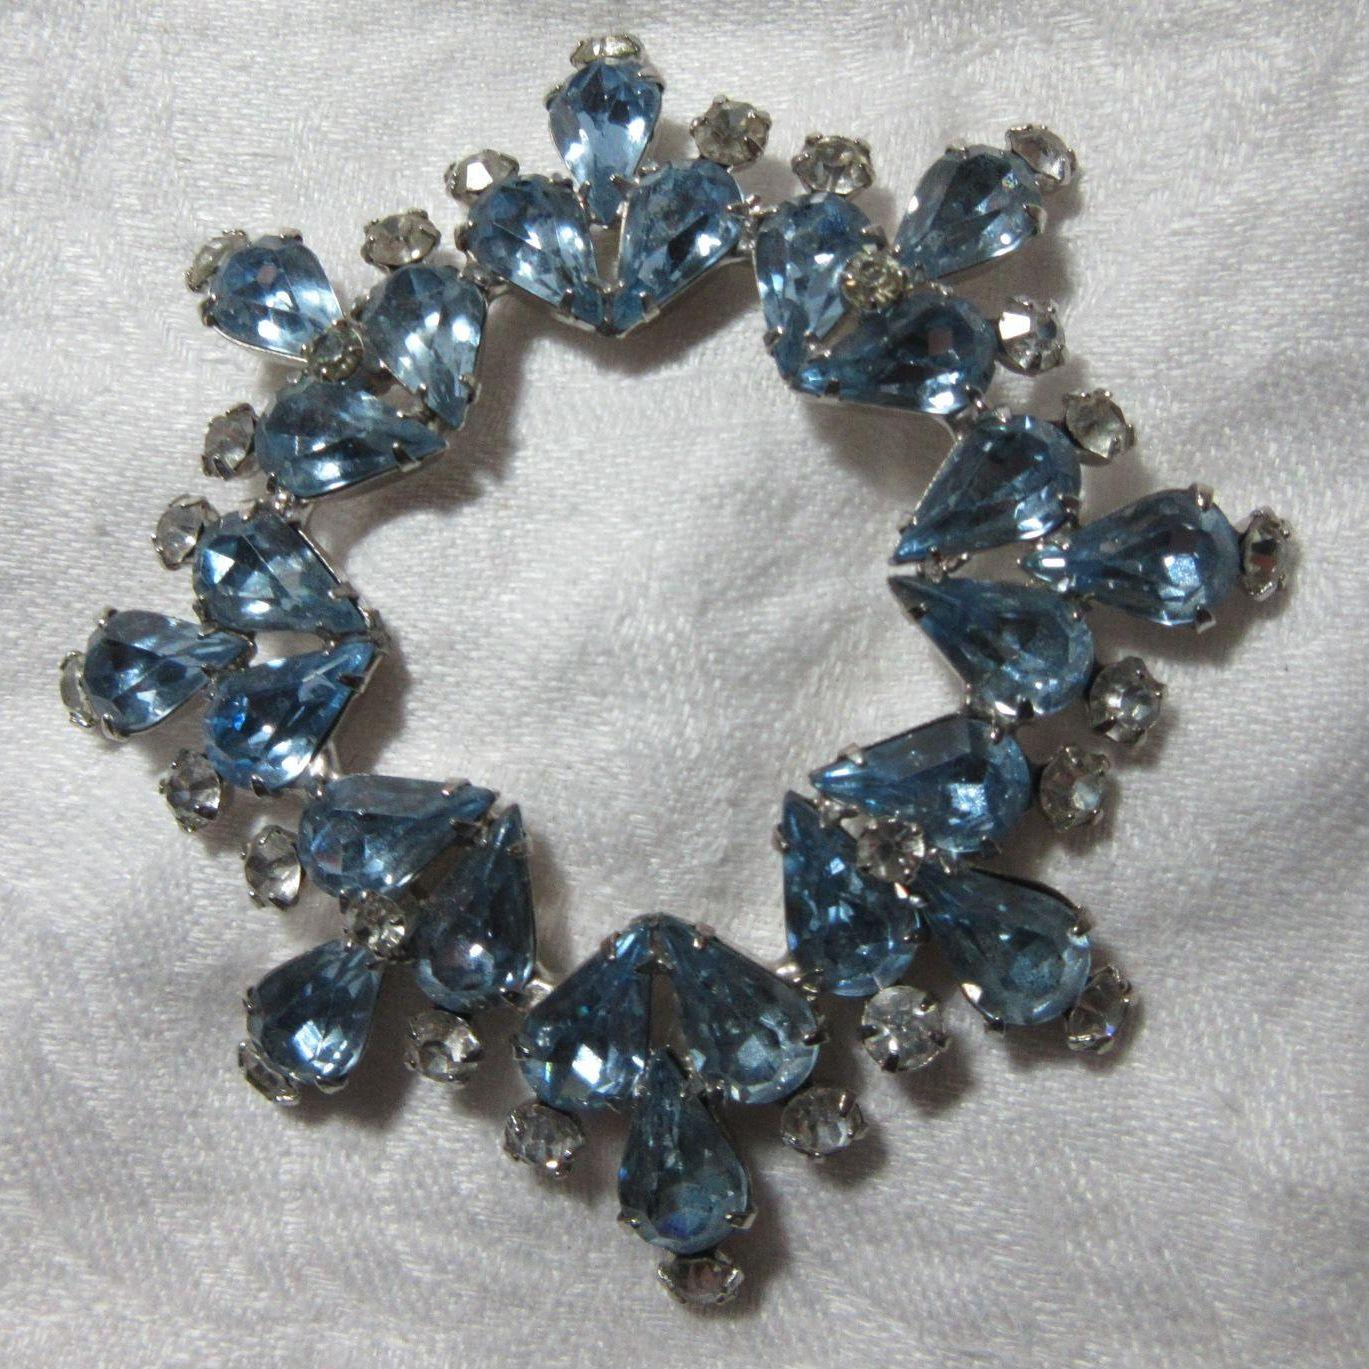 Weiss Huge Blue Rhinestone Brooch Signed Costume Jewelry